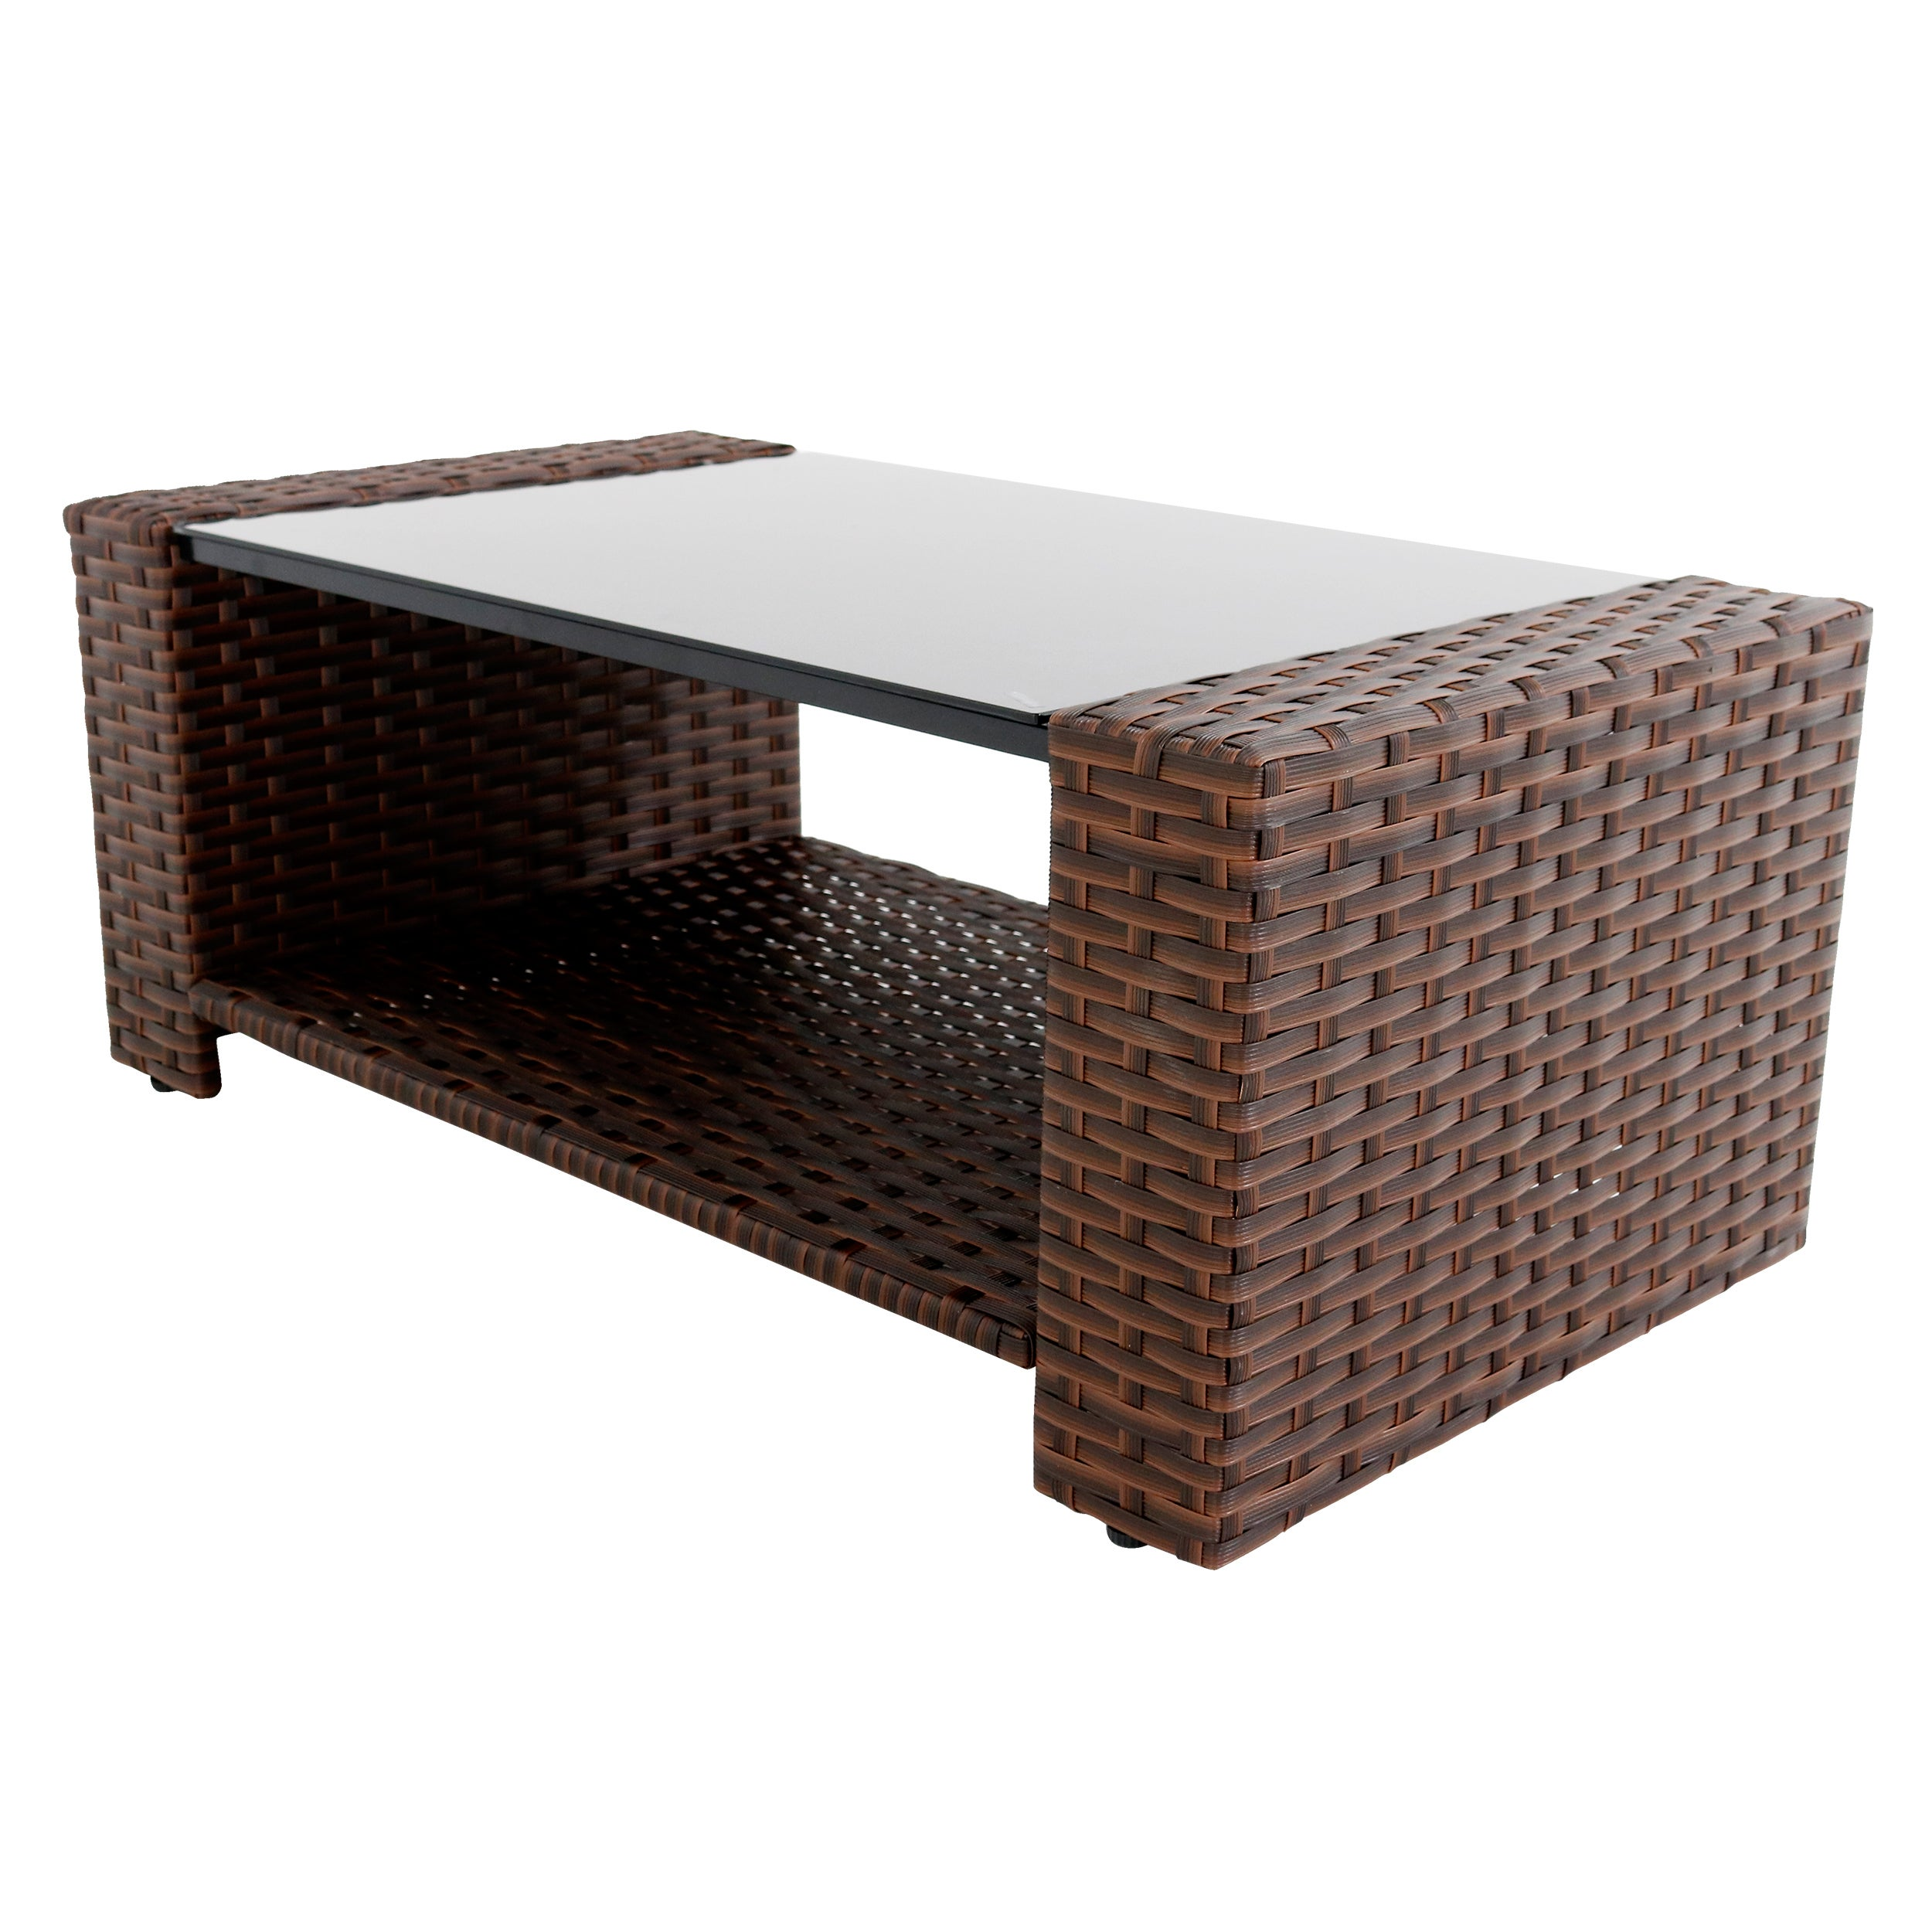 Prima Outdoor Brown Rattan shelled Stainless Steel Glass top